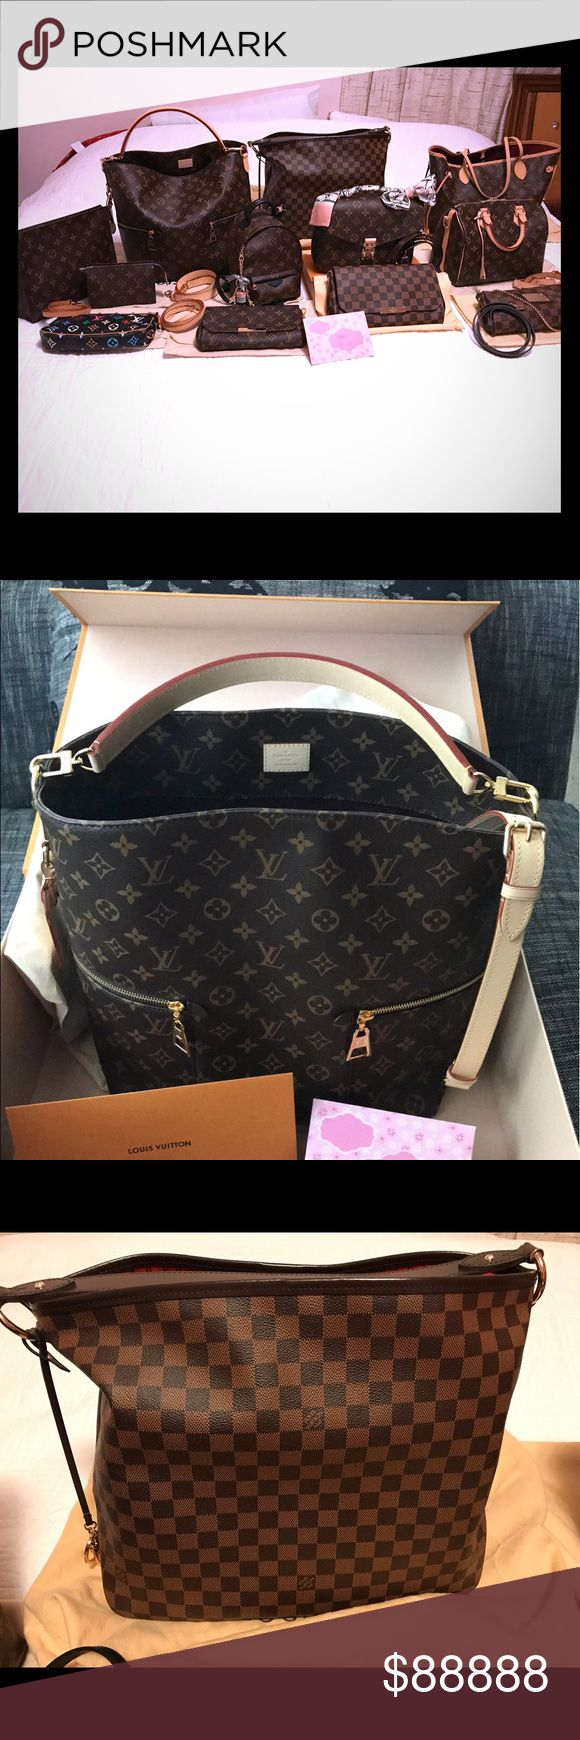 """Latest personal closet """"Inventory""""😊😍😊 Louis Vuitton Miss Melie, Delightful MM in DE, Pochette Metis in Mono, Palm Springs Mini Backpack, Favorite MM in DE, Speedy B25 in Mono, Neverfull MM Pivoine,Toiletry 26 in Mono, Toiletry 15 in Mono, Multicolor Pochette and more SLGs not included in the picture. I did this in the middle of night since i cant do it when kids are around!!!😫😩💧🍼🥛🍦🍩🍪 🤣😂🤣 so i thought i wont include the SLGs anymore otherwise it would take me a good hr again to…"""